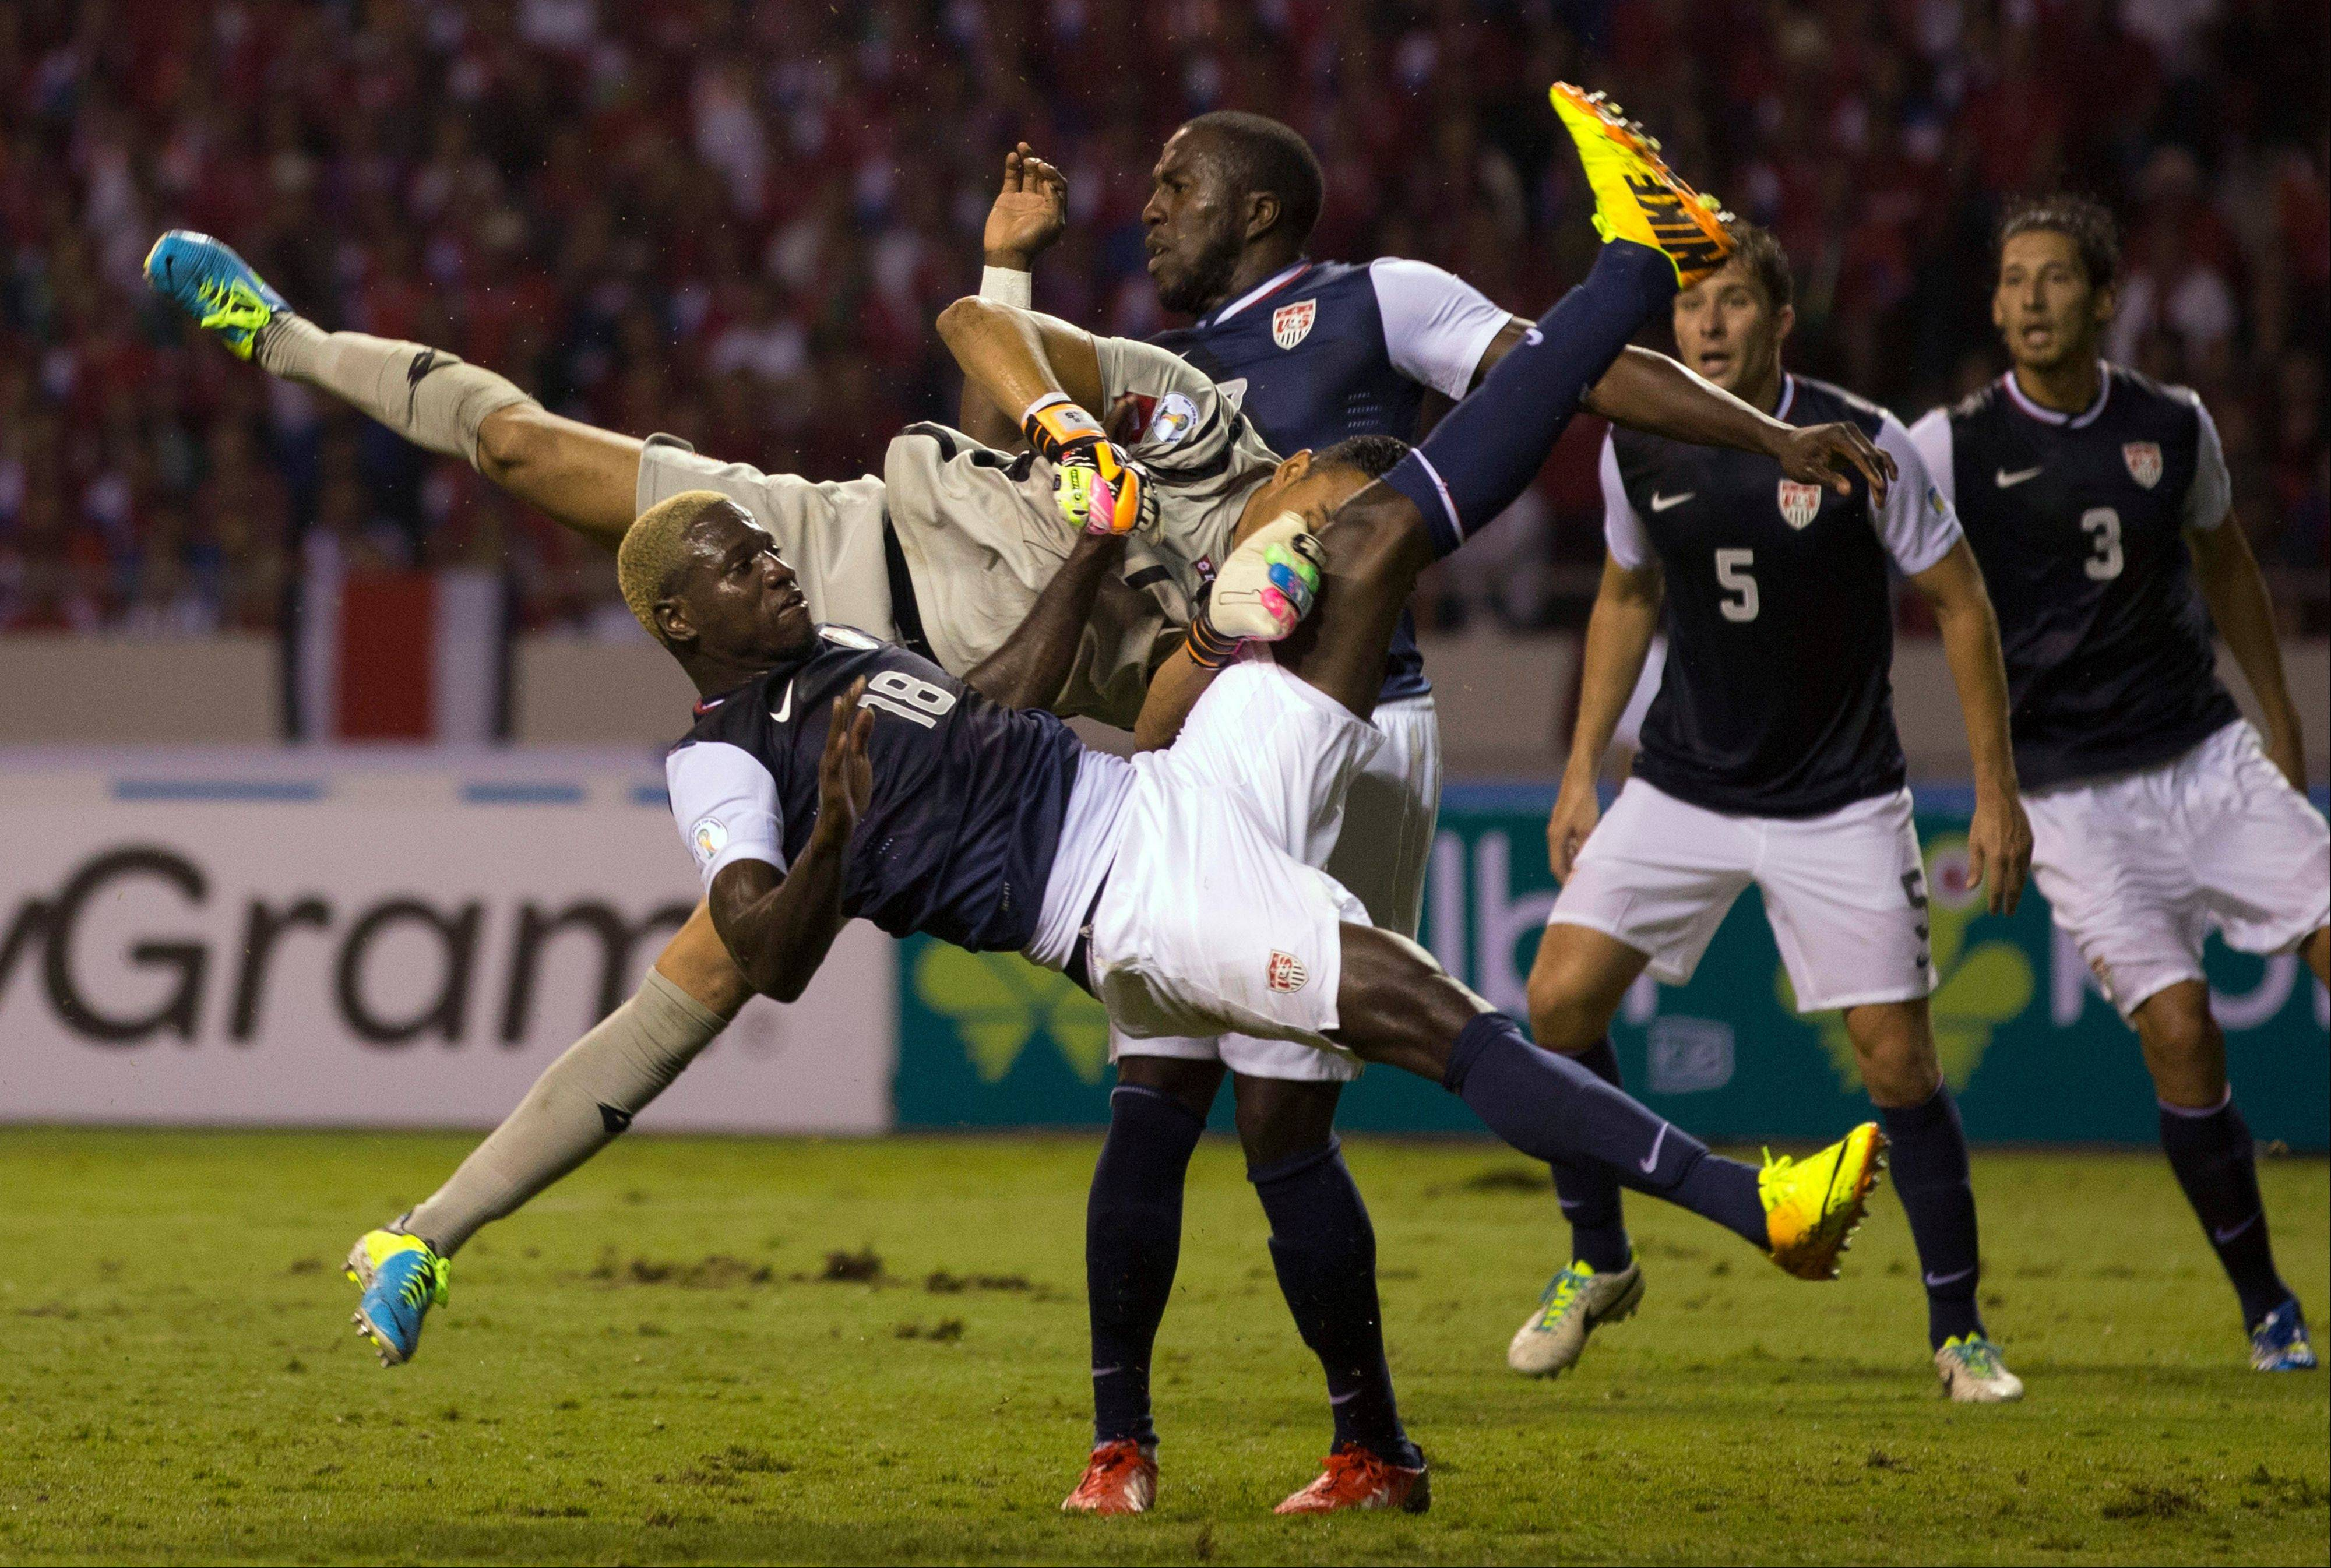 The United States' Eddie Johnson, front, collides with Costa Rica's goalkeeper Keylor Navas, who blocked his attempt to score during a 2014 World Cup qualifier Friday in San Jose, Costa Rica. Behind at center is the United States' Jozy Altidore.